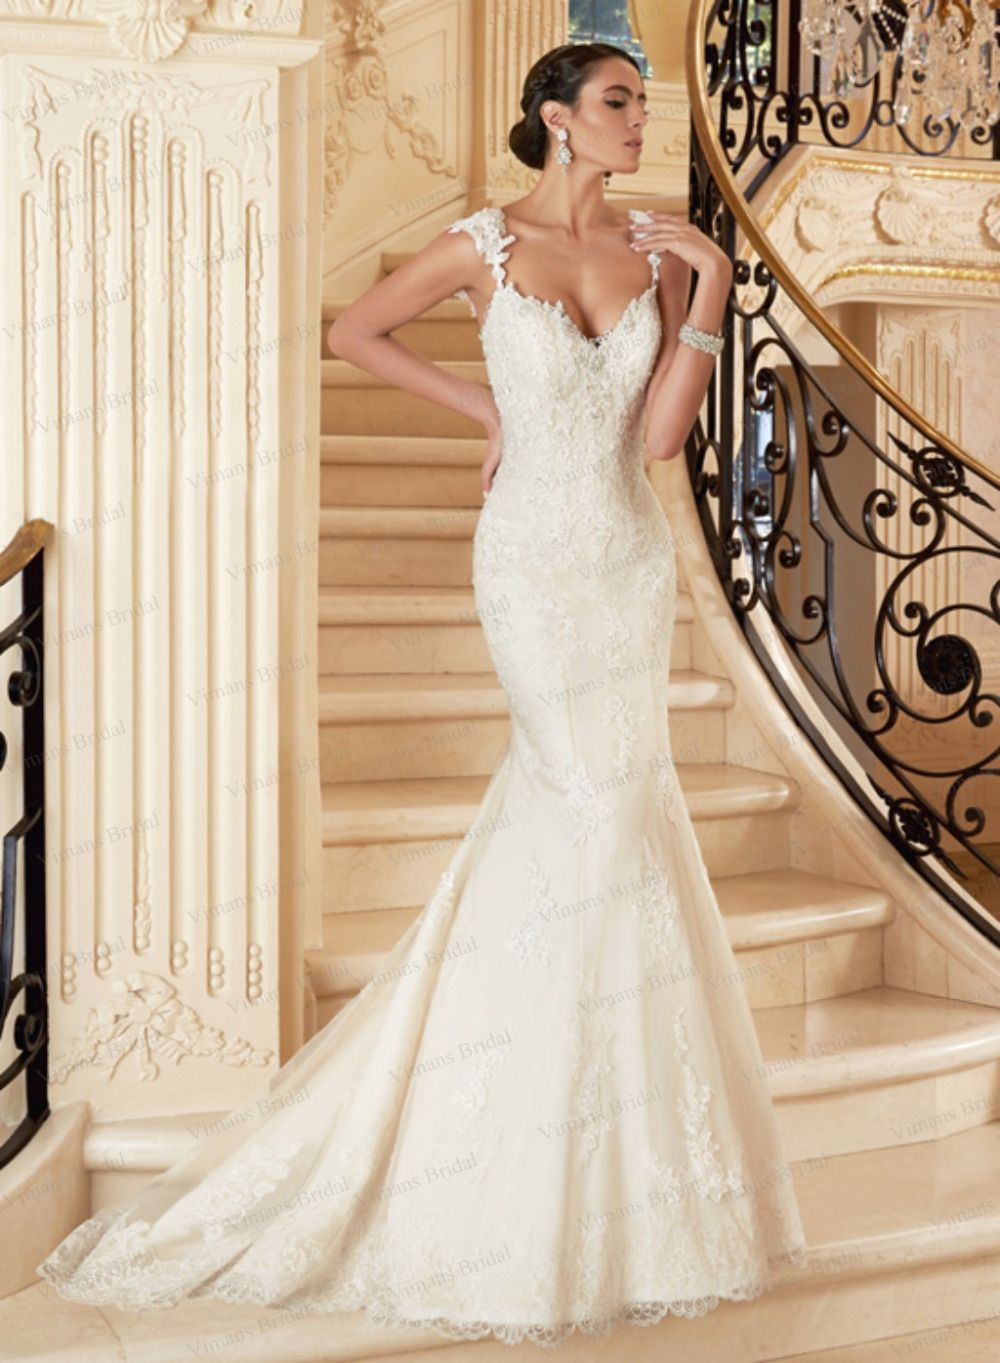 Kitty Chen Wedding Dresses Ivoire Paris | Mermaid wedding dresses ...